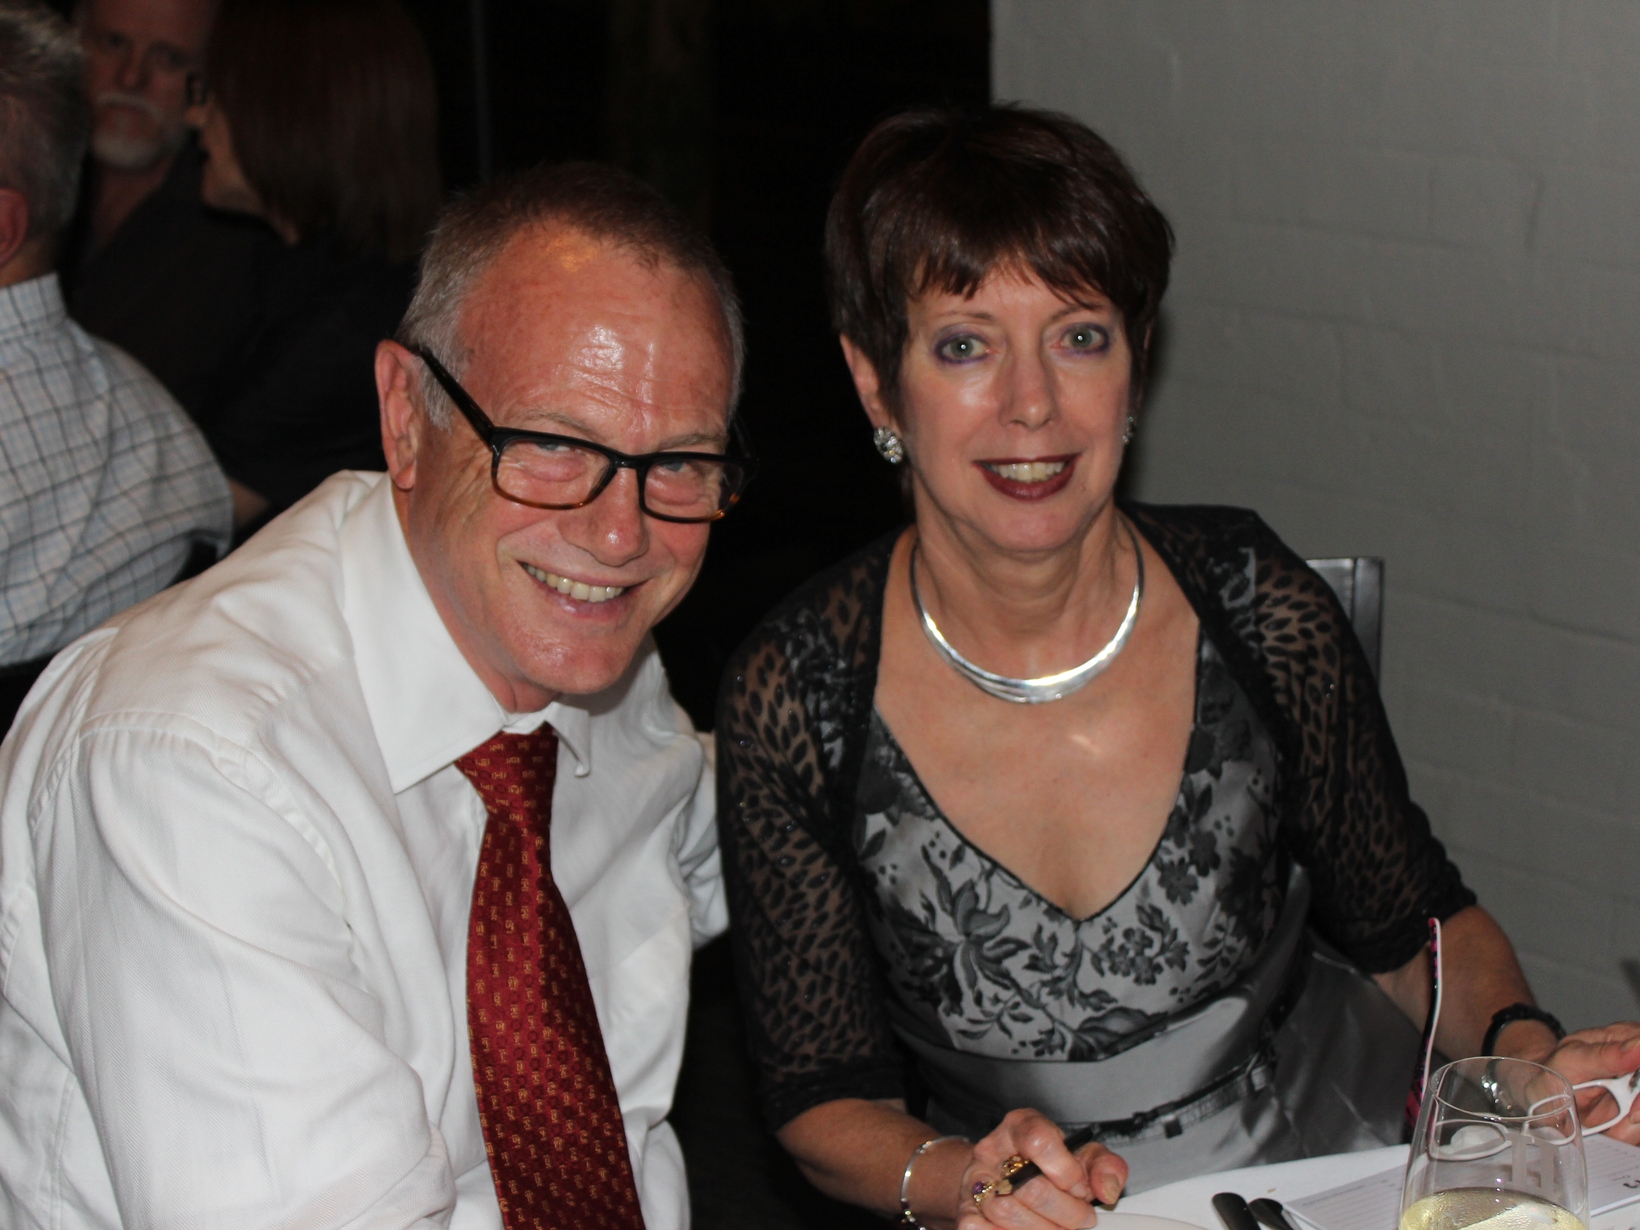 Lorraine & Len from Brisbane, Queensland, Australia